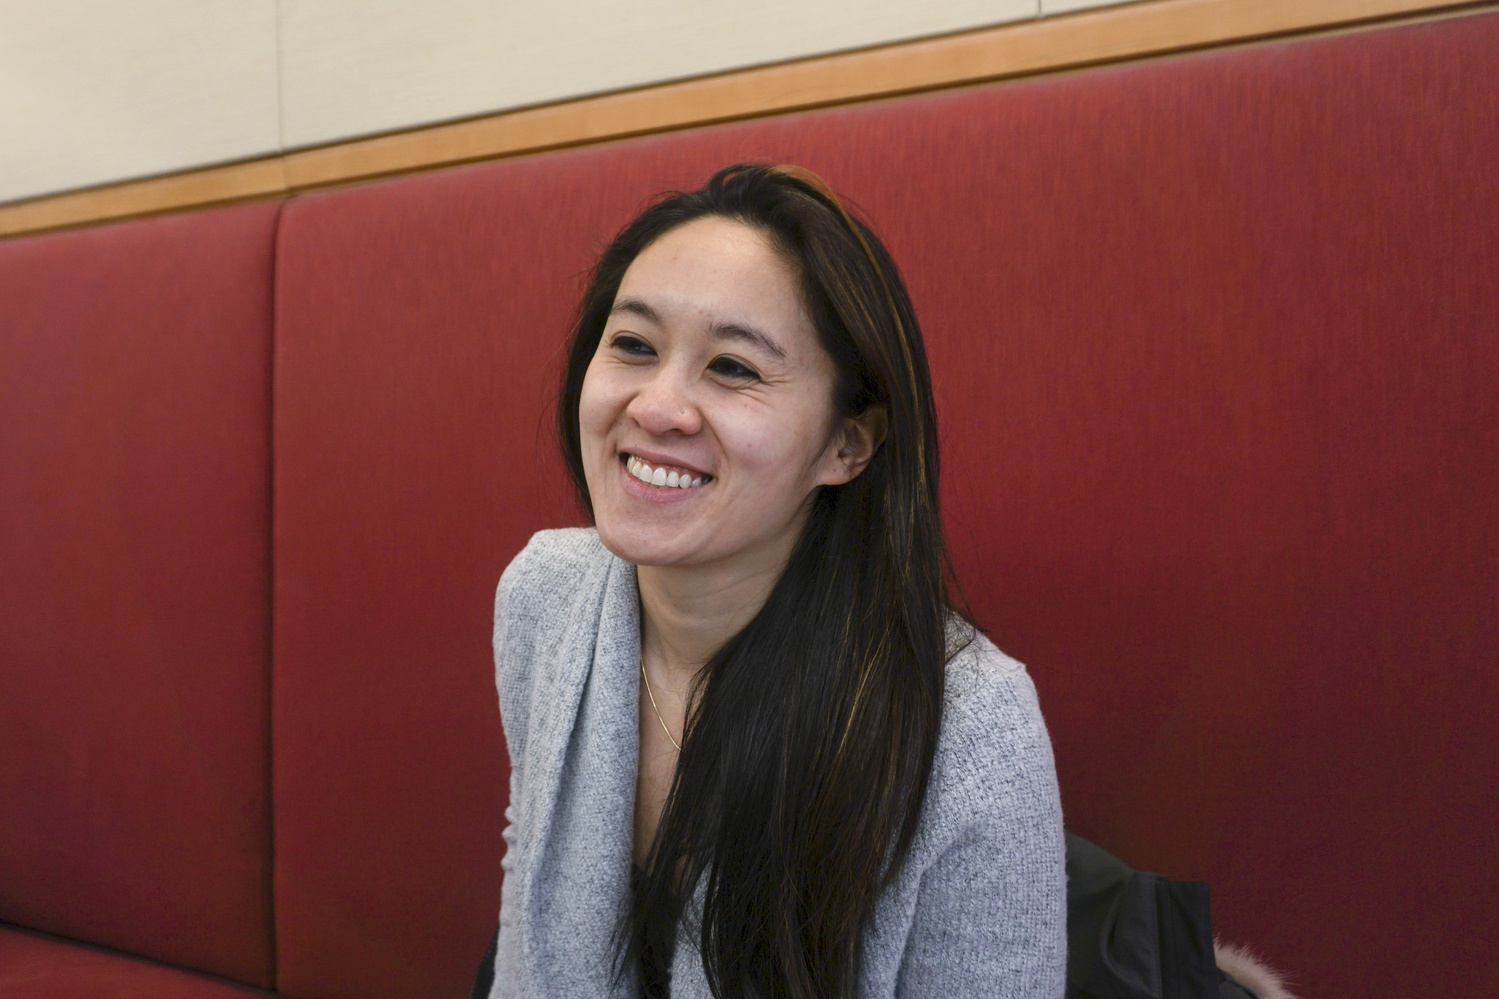 Natalie Bao Tram Le is a Master of Liberal Arts Candidate and a Special Student in Government at Harvard University.